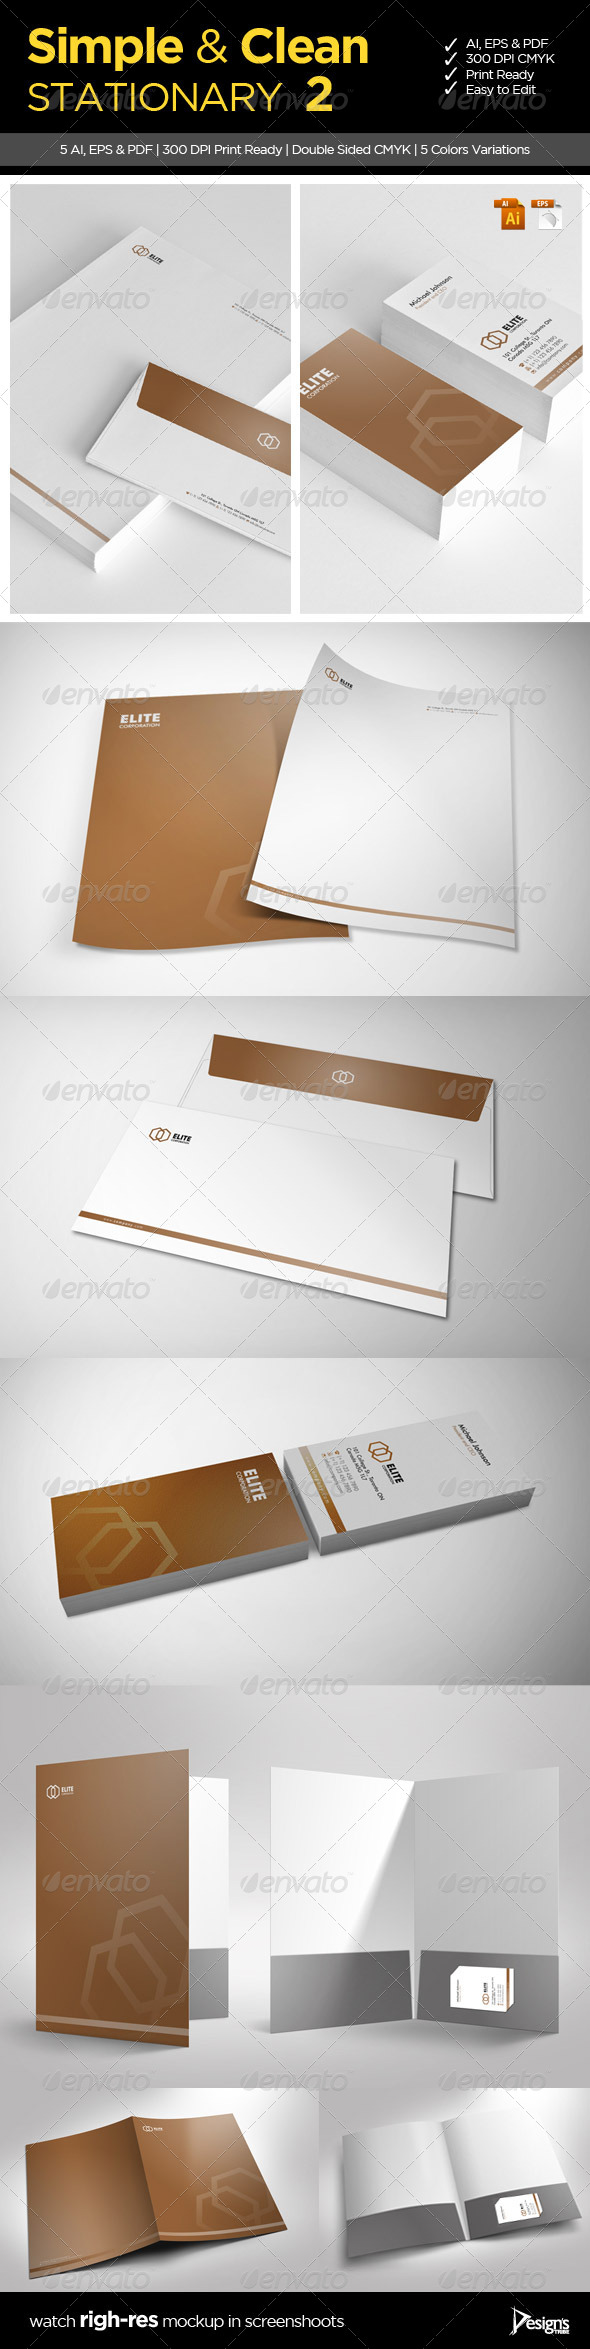 GraphicRiver Simple and Clean Stationary 2 5524938